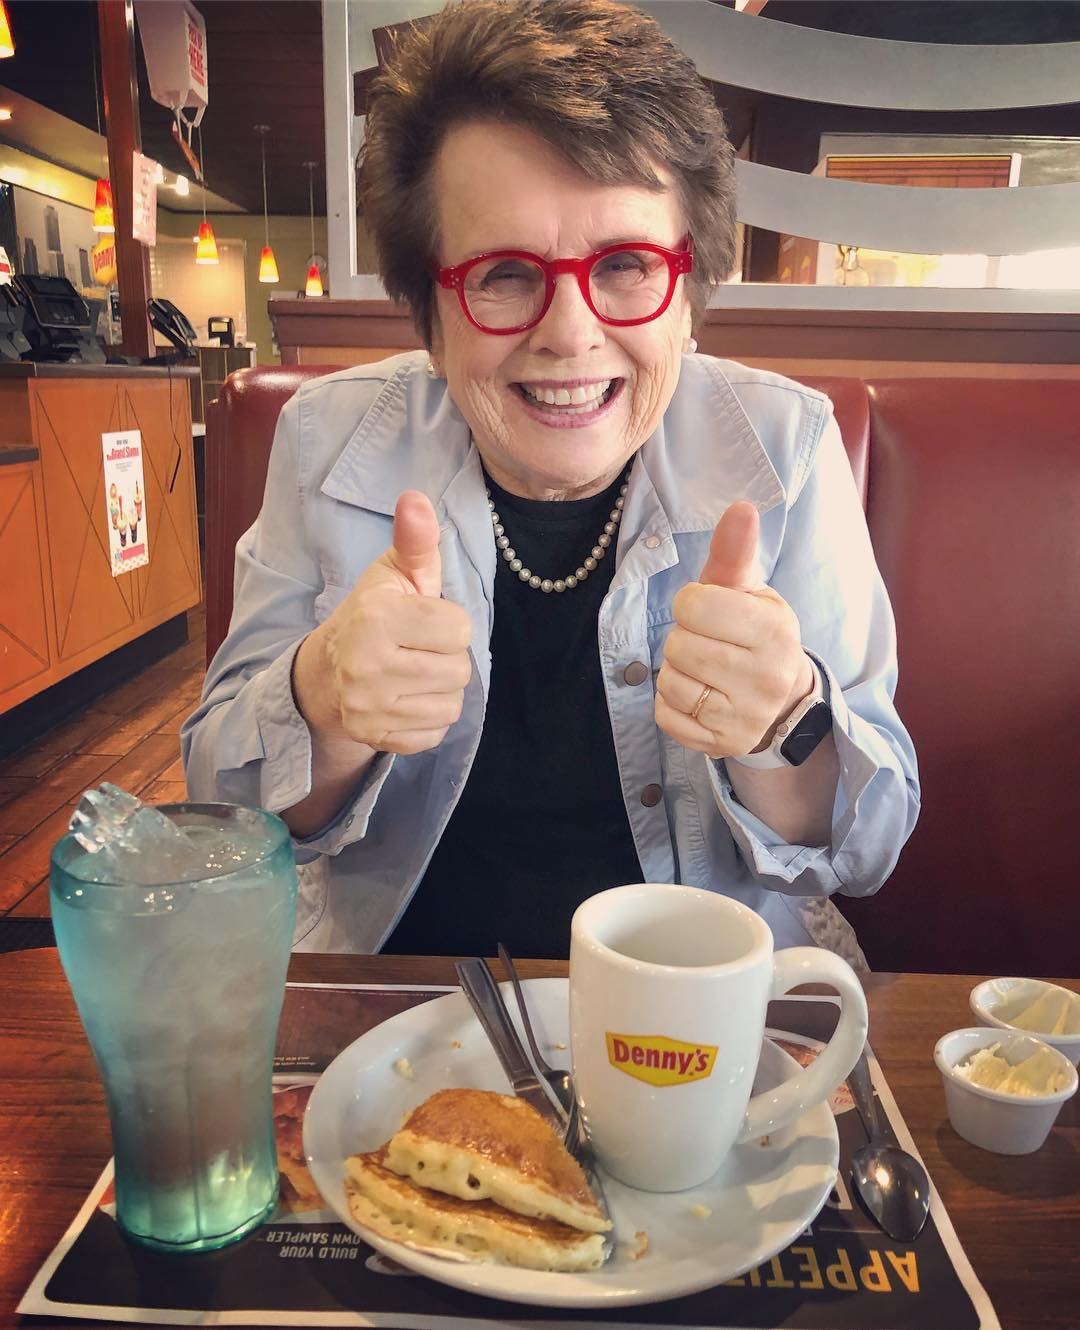 A tenista Billie Jean King, de 75 anos (Foto: Instagram/@billiejeanking)